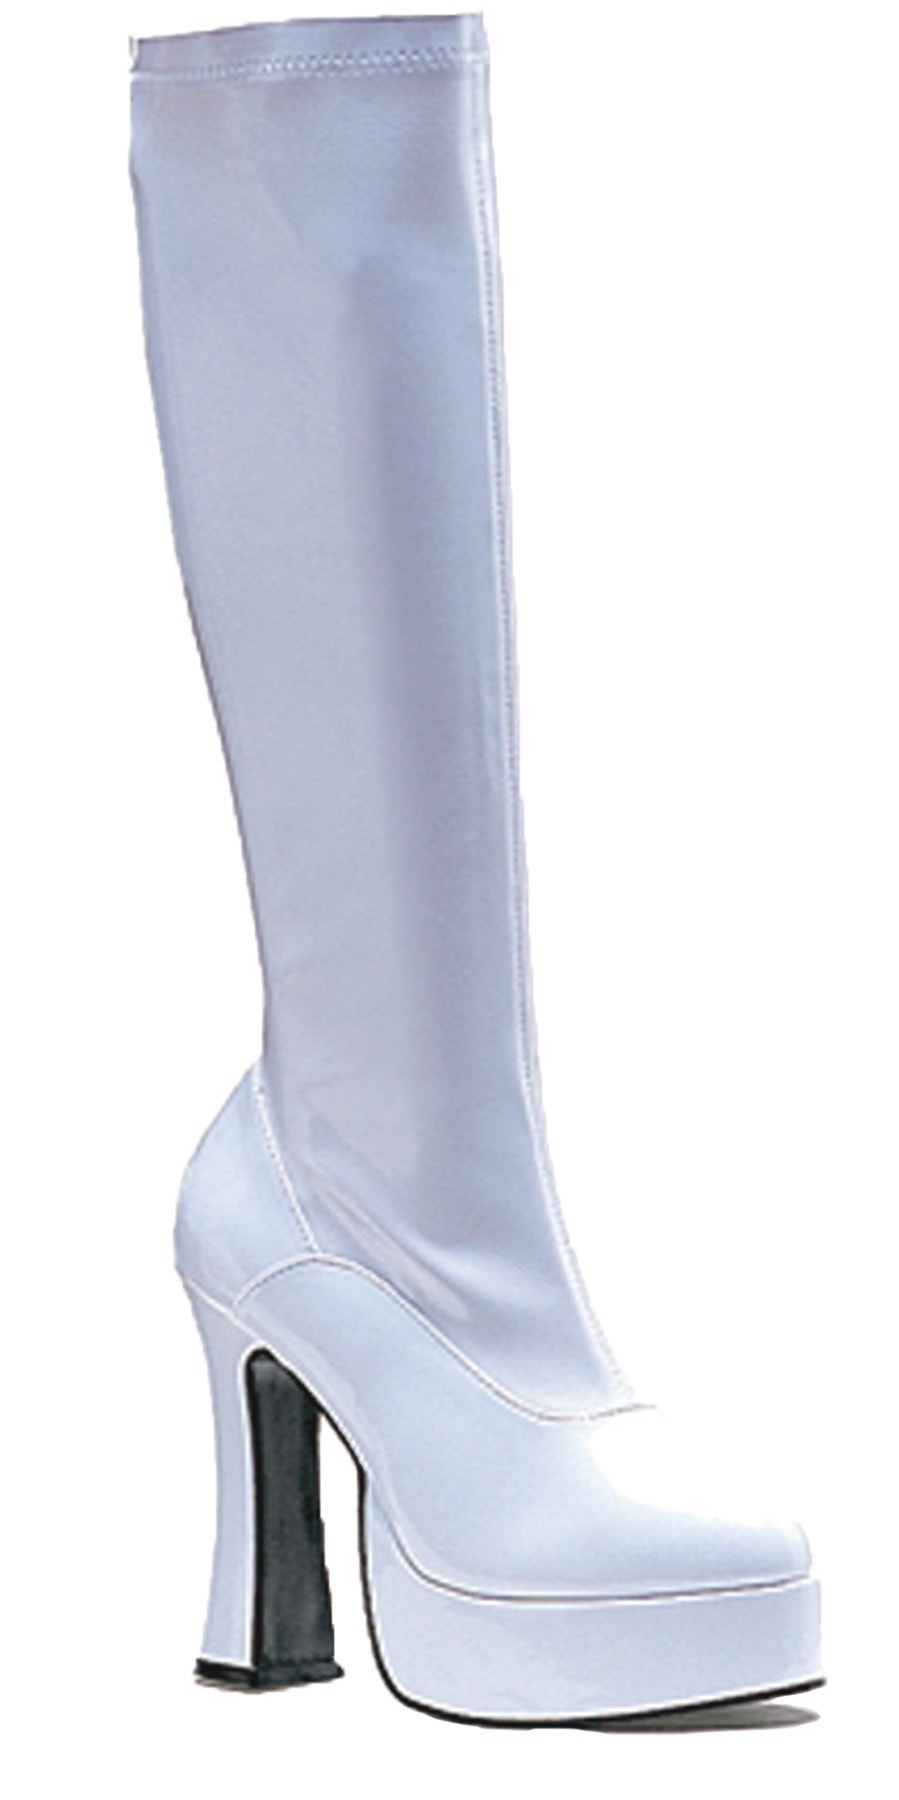 Morris Boot Chacha White Size 7 - MaxWigs